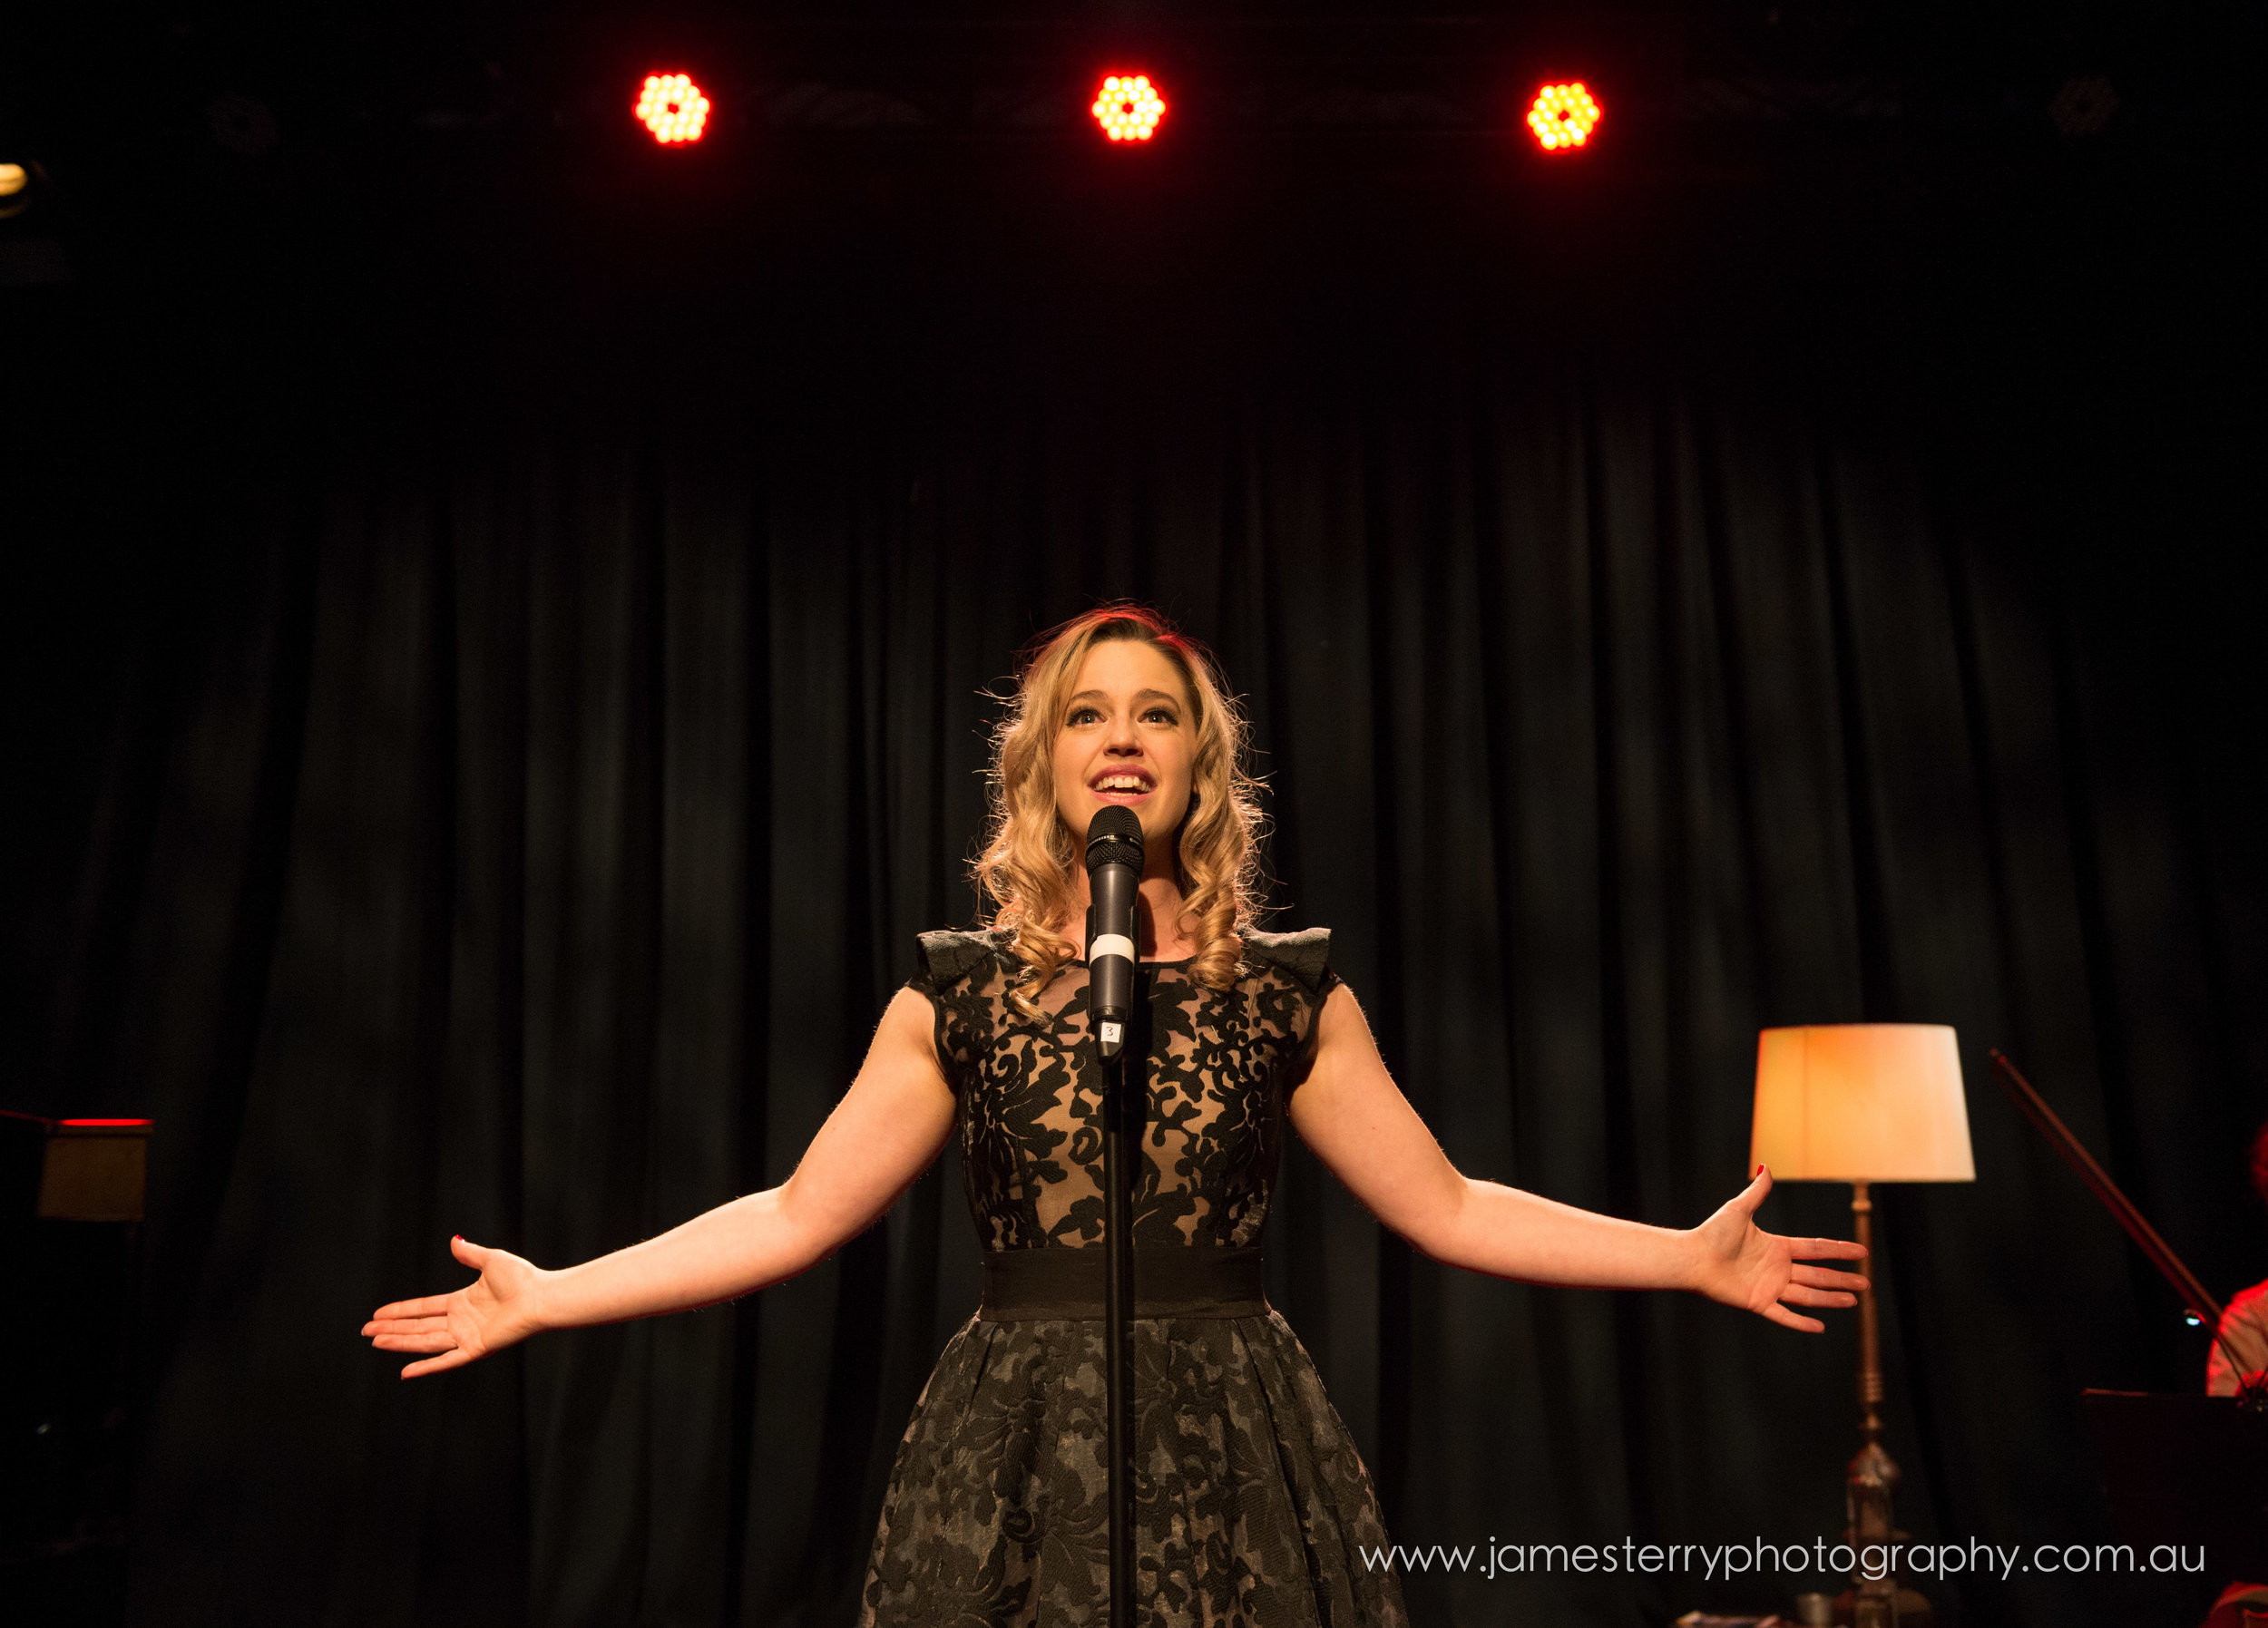 Pictures: Songs from Movie Musicals - Picture of Kerrie Anne Greenland by James Terry